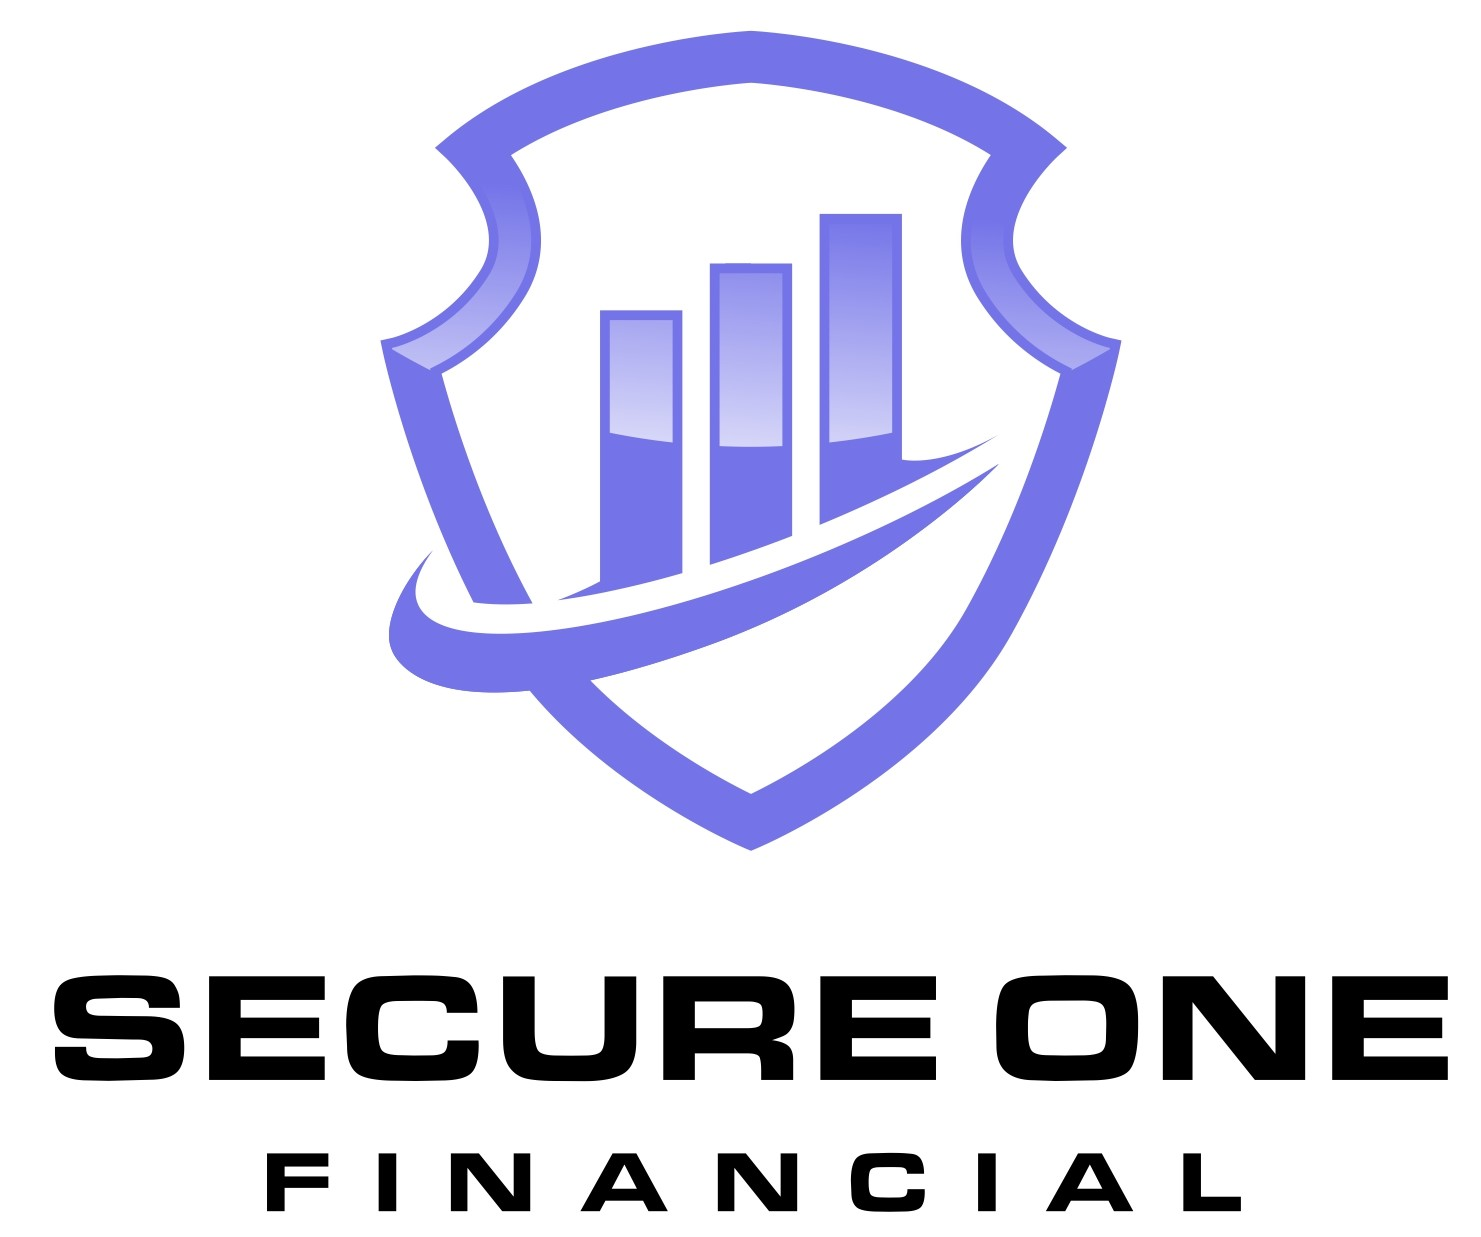 Tackling the Consumer Debt Crisis: Secure One Financial Recommends Exploring More Options